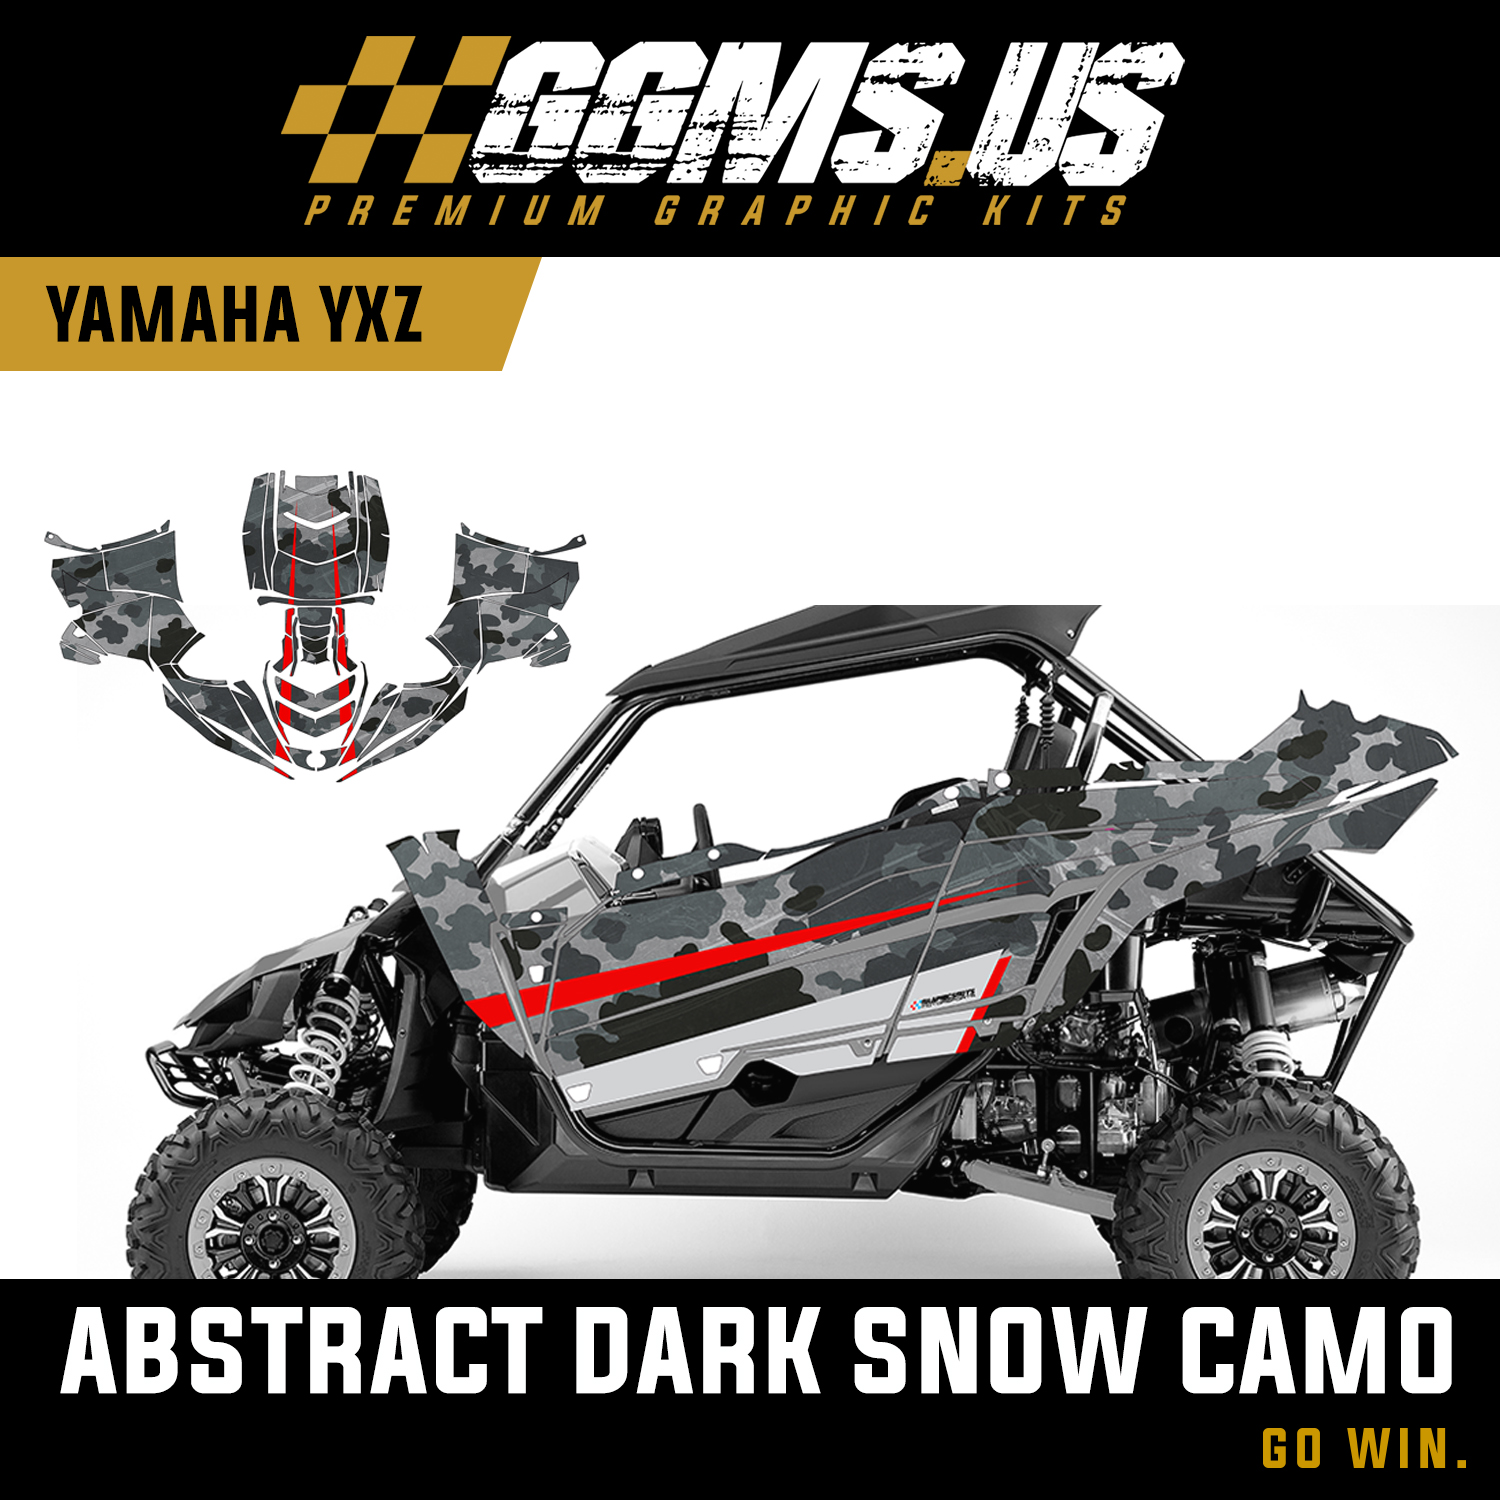 utv wrap yamaha yxz1000rabstract dark snow camo. Black Bedroom Furniture Sets. Home Design Ideas